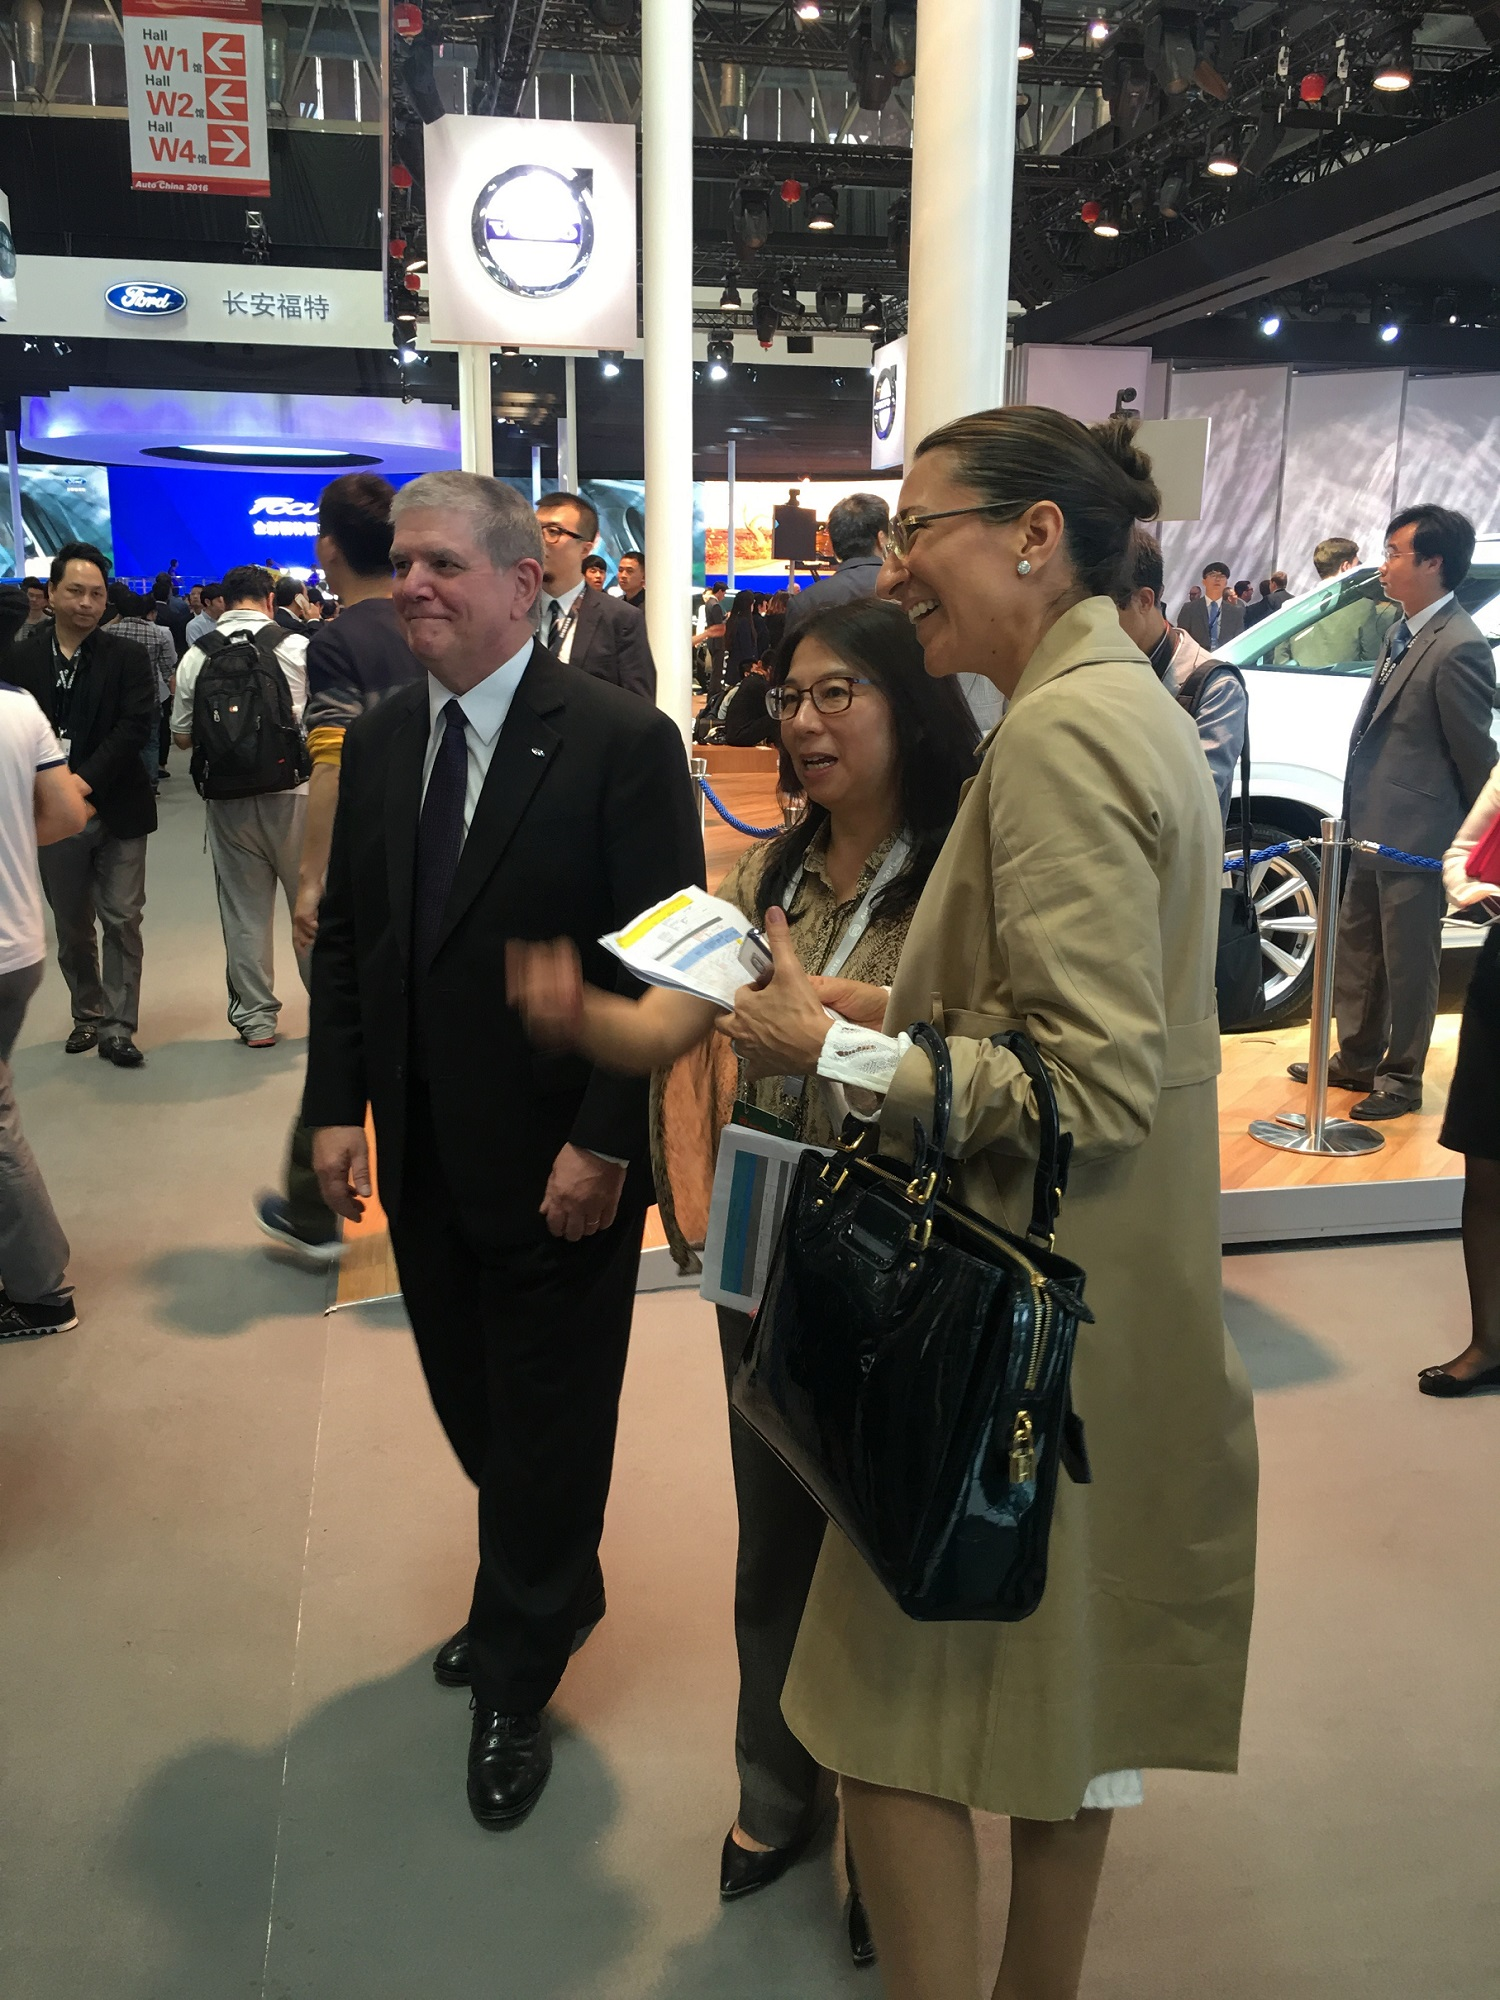 Vanessa Moriel (front) poses for a picture with Ford Asia President, David L. Schoch (back).